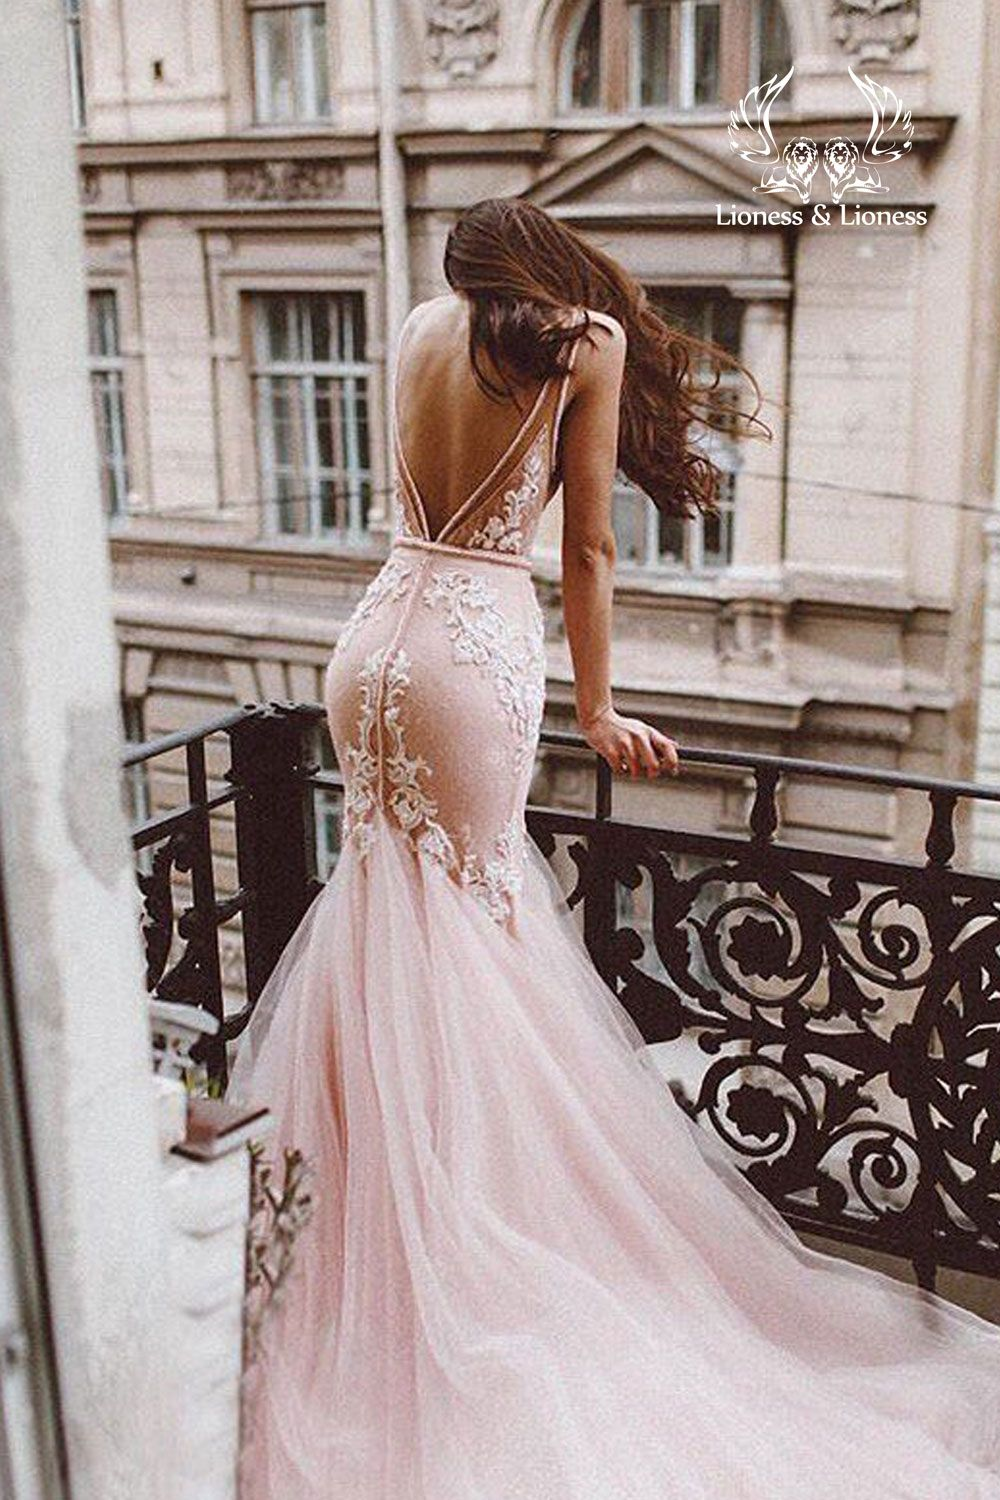 Pink Blush Lace Wedding Dress Mermaid Fluffy Removable Tulle Etsy In 2020 Blush Wedding Dress Lace Backless Mermaid Wedding Dresses Pink Wedding Dresses